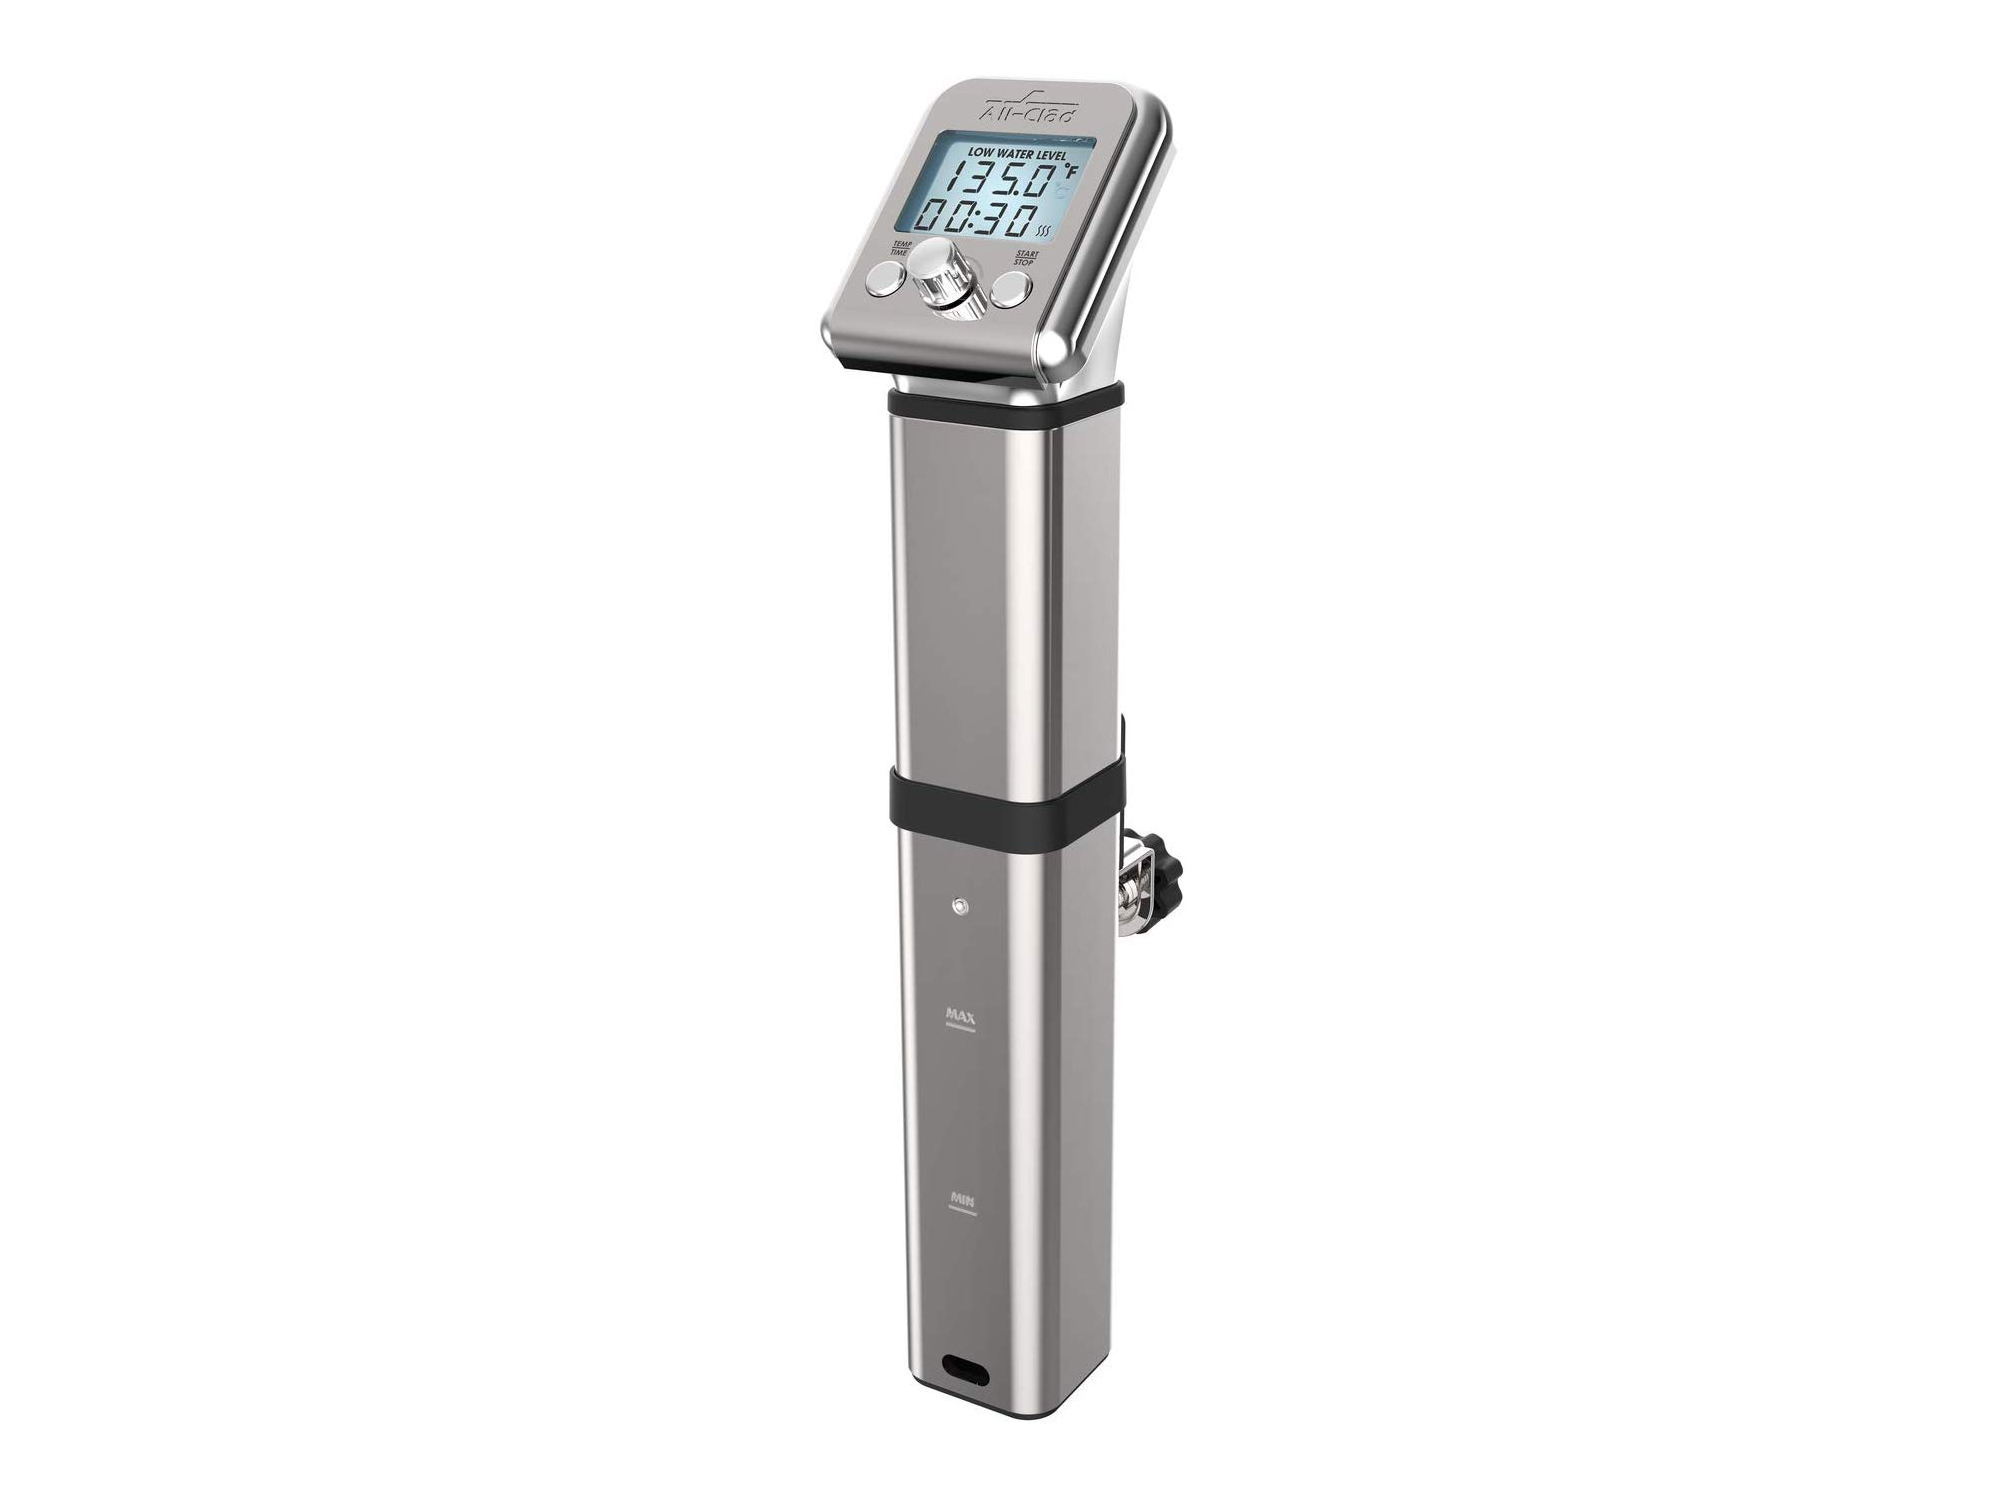 All-Clad EH800D51 Sous Vide Professional Immersion Circulator Slow Cooker